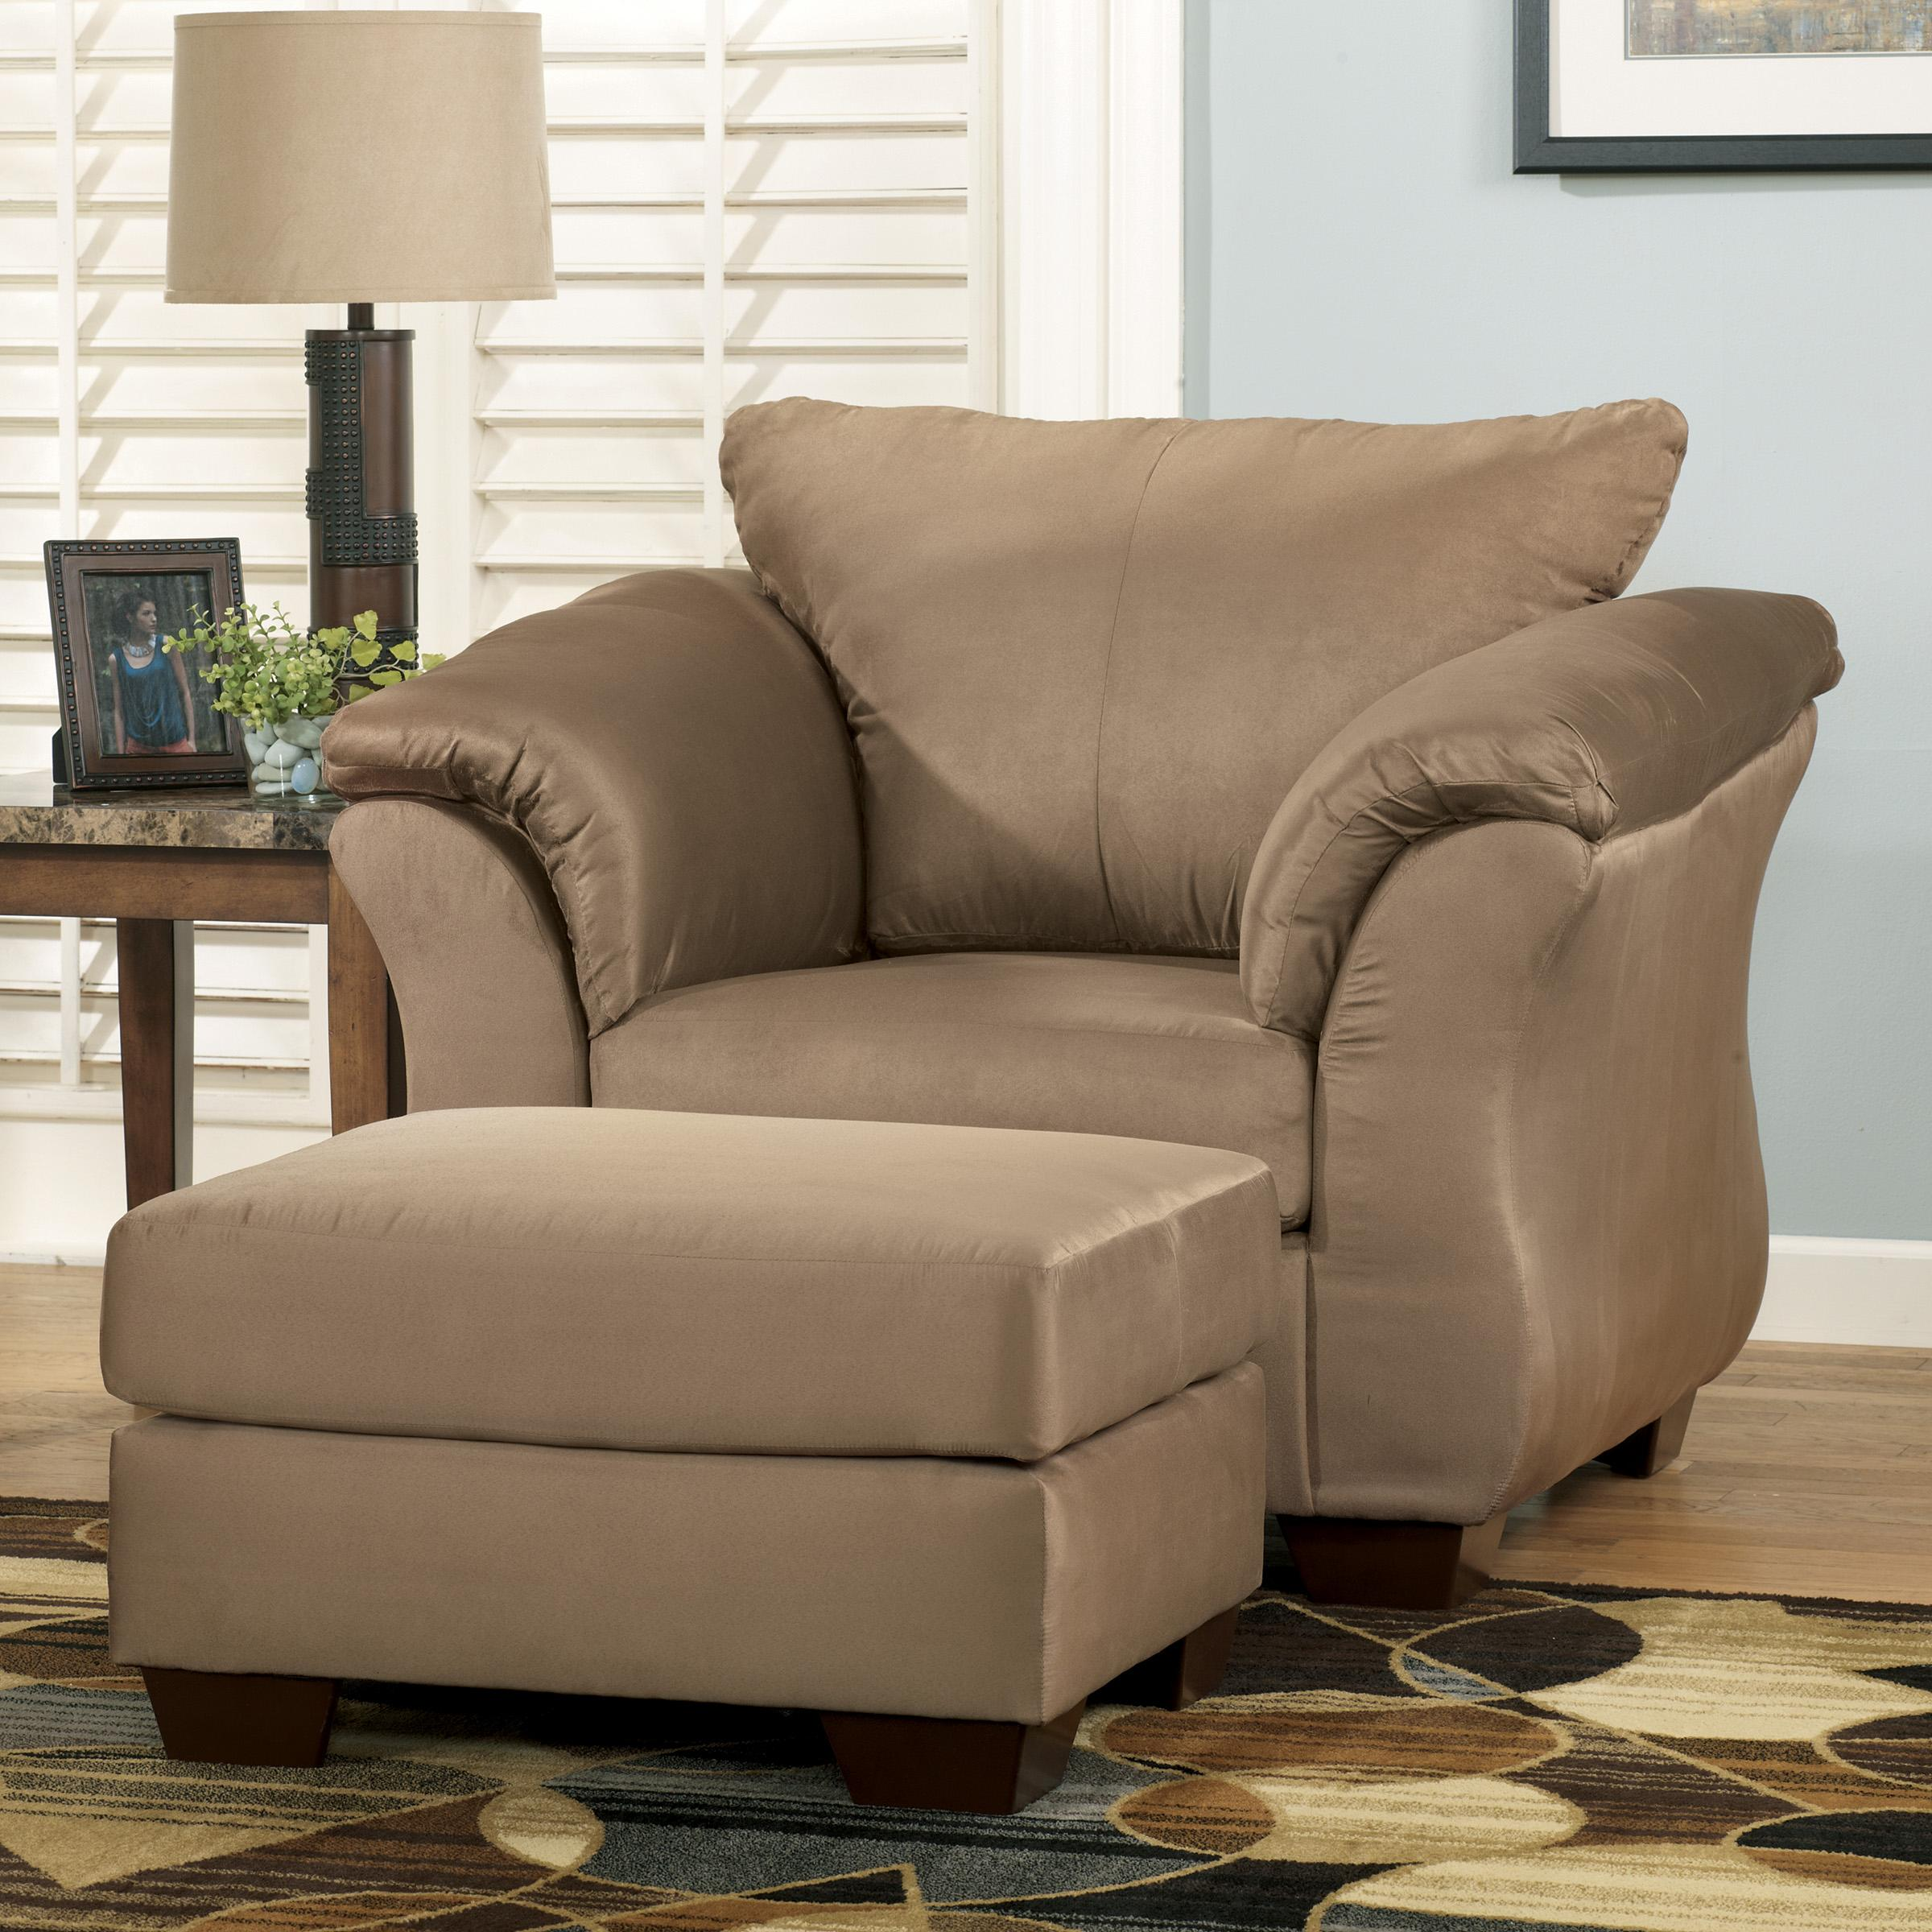 Signature Design By Ashley Darcy Mocha Contemporary Upholstered Chair And Ottoman With Tapered